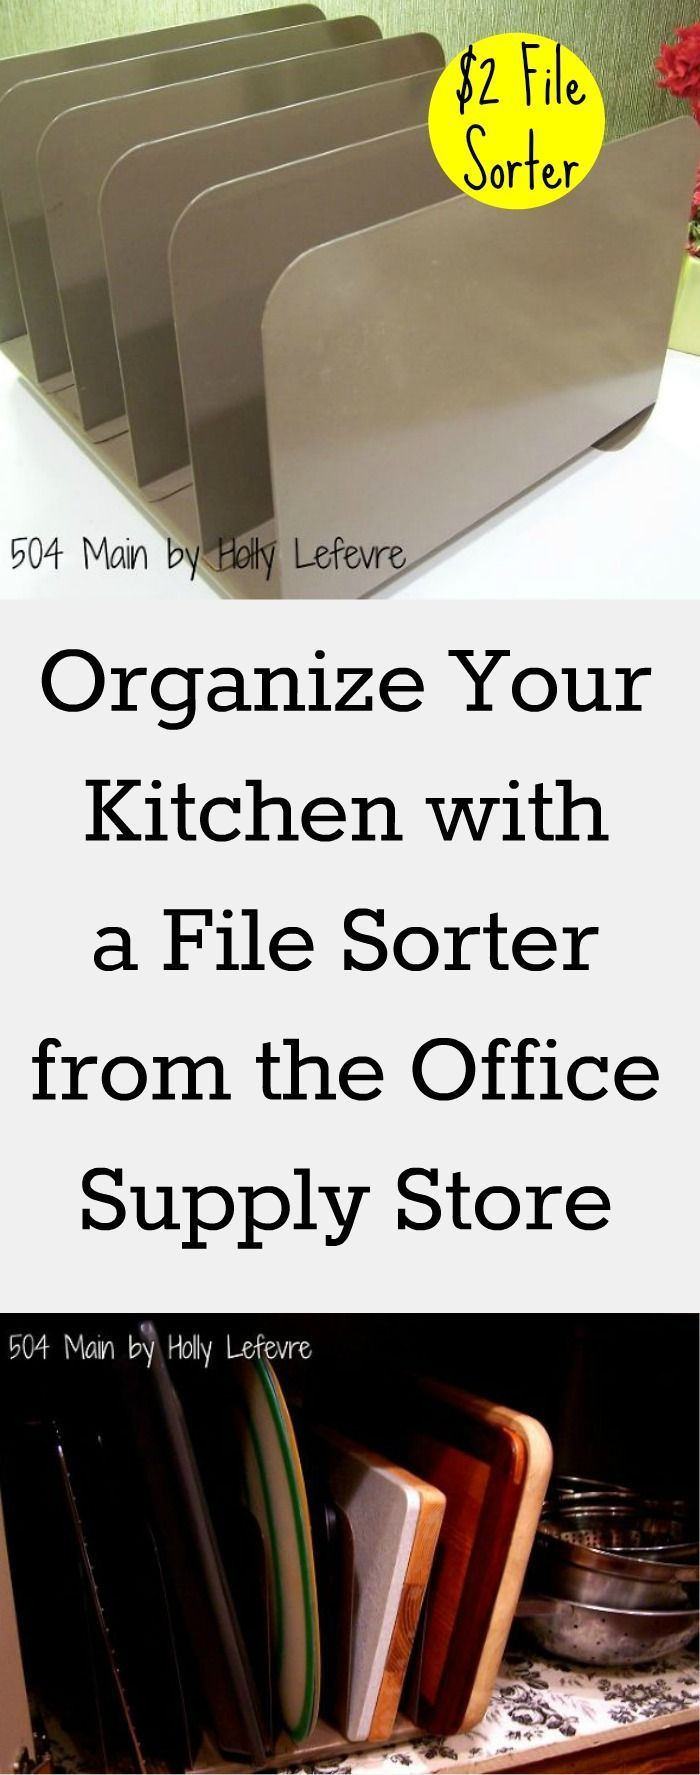 This is such a clever idea to use an everyday and inexpensive item to organize.